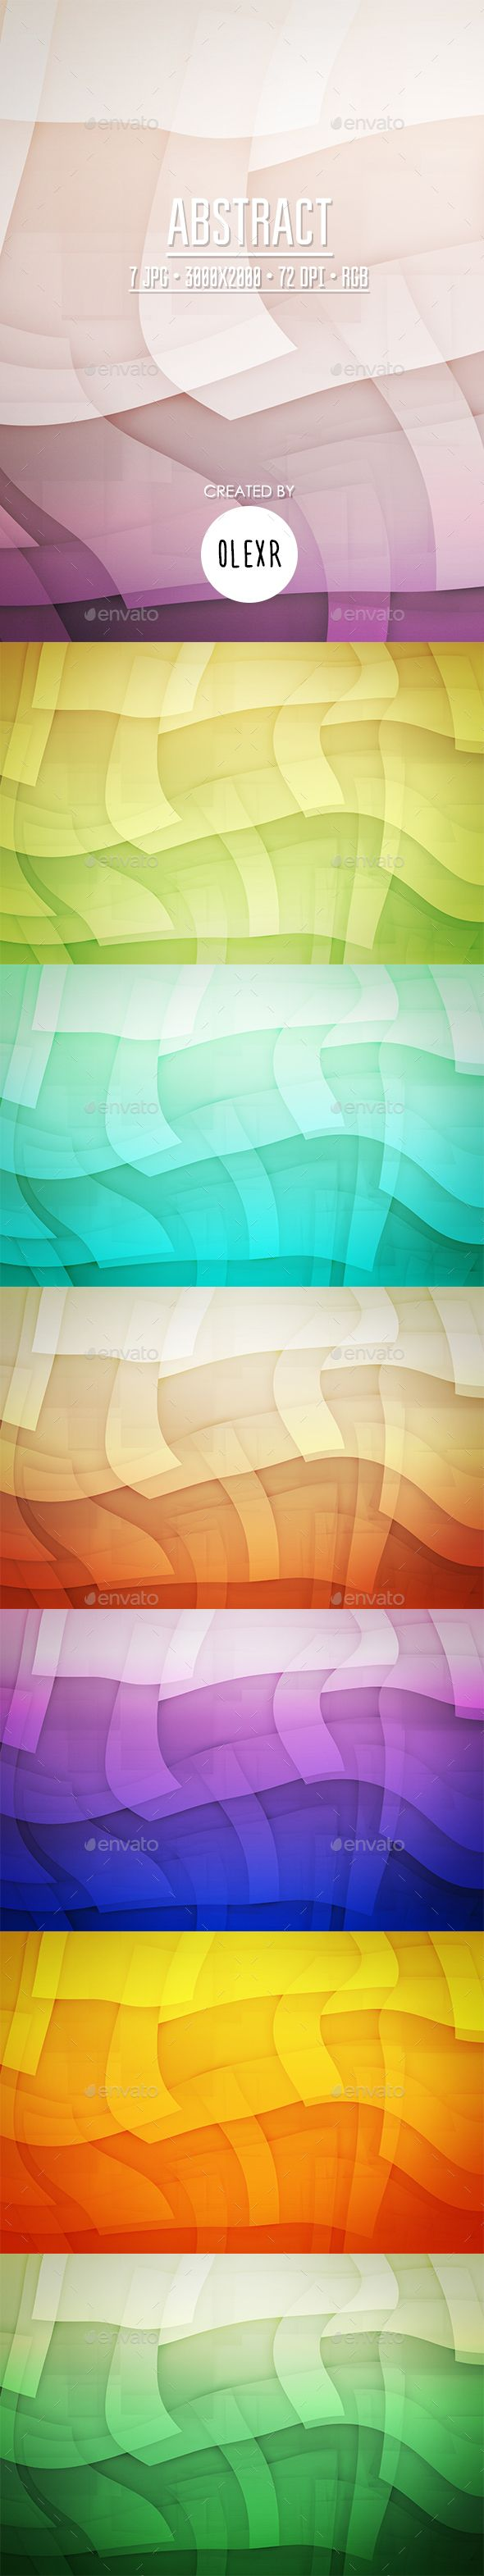 Abstract Backgrounds by OlexR  7 JPG files 3000脳2000 px 72 DPI RGB